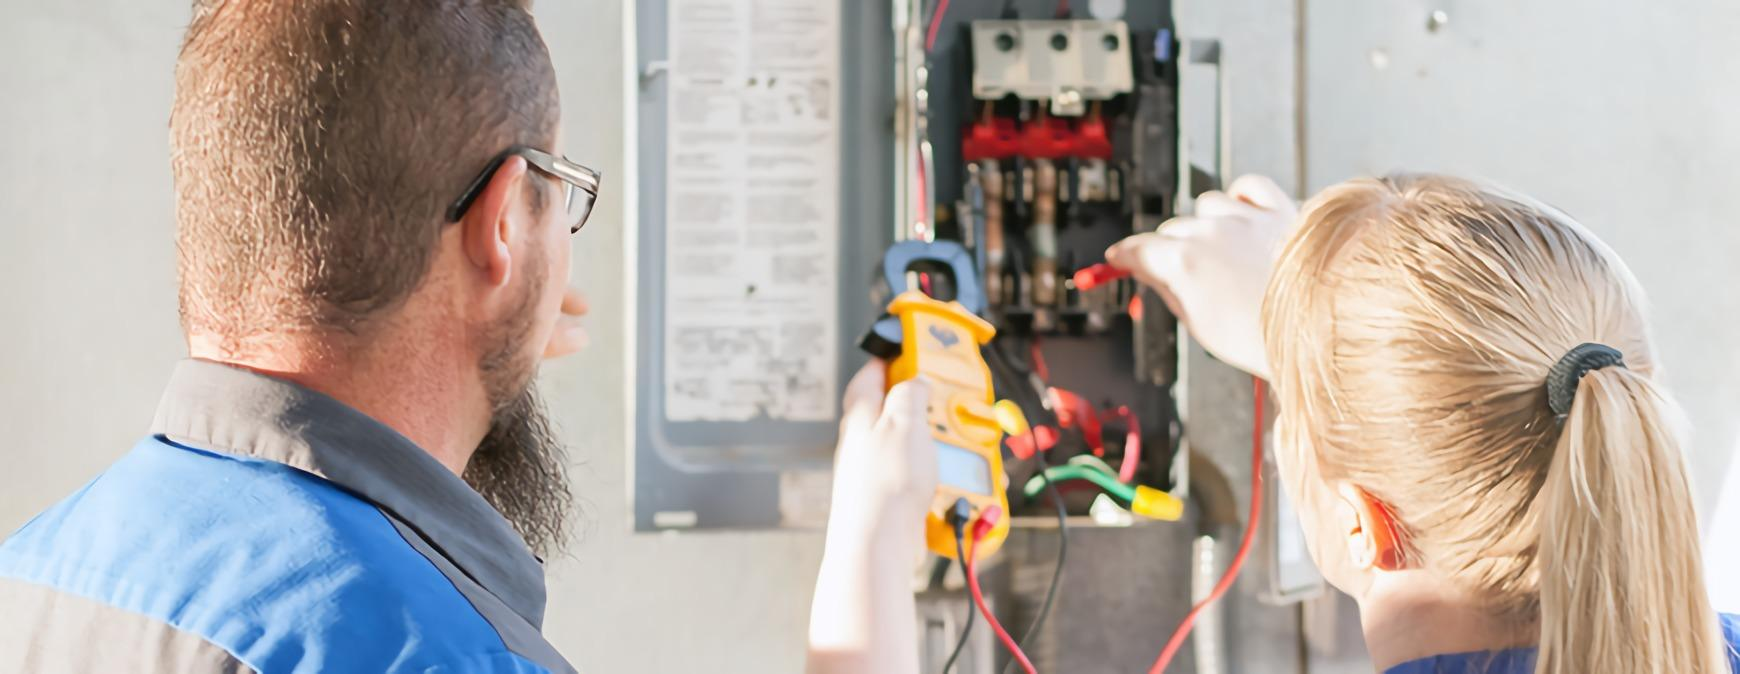 electrician training with wiring